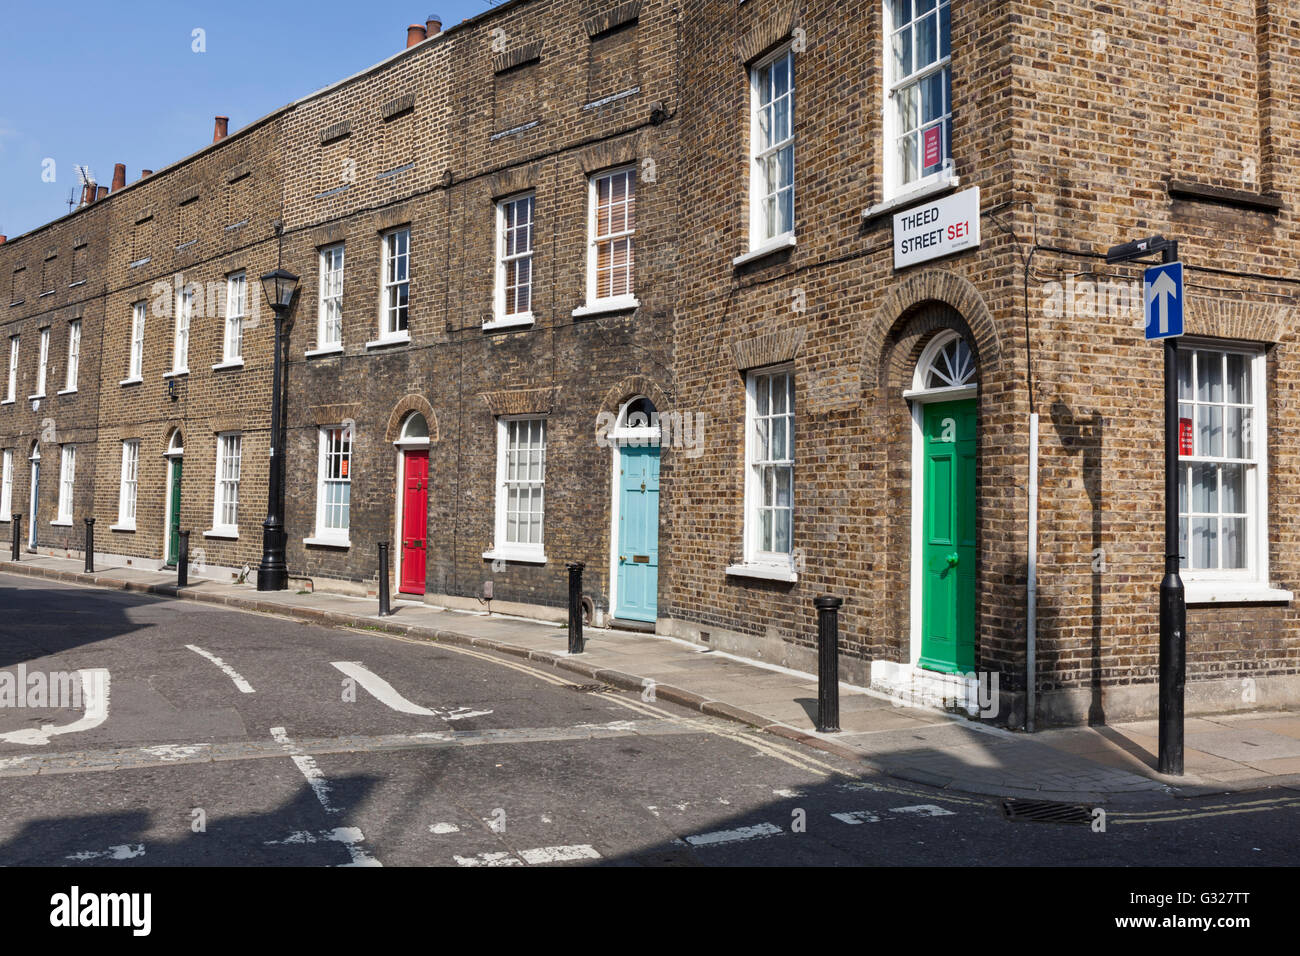 Traditional Victorian brick terraced houses on Theed Street in Lambeth, London, England. - Stock Image